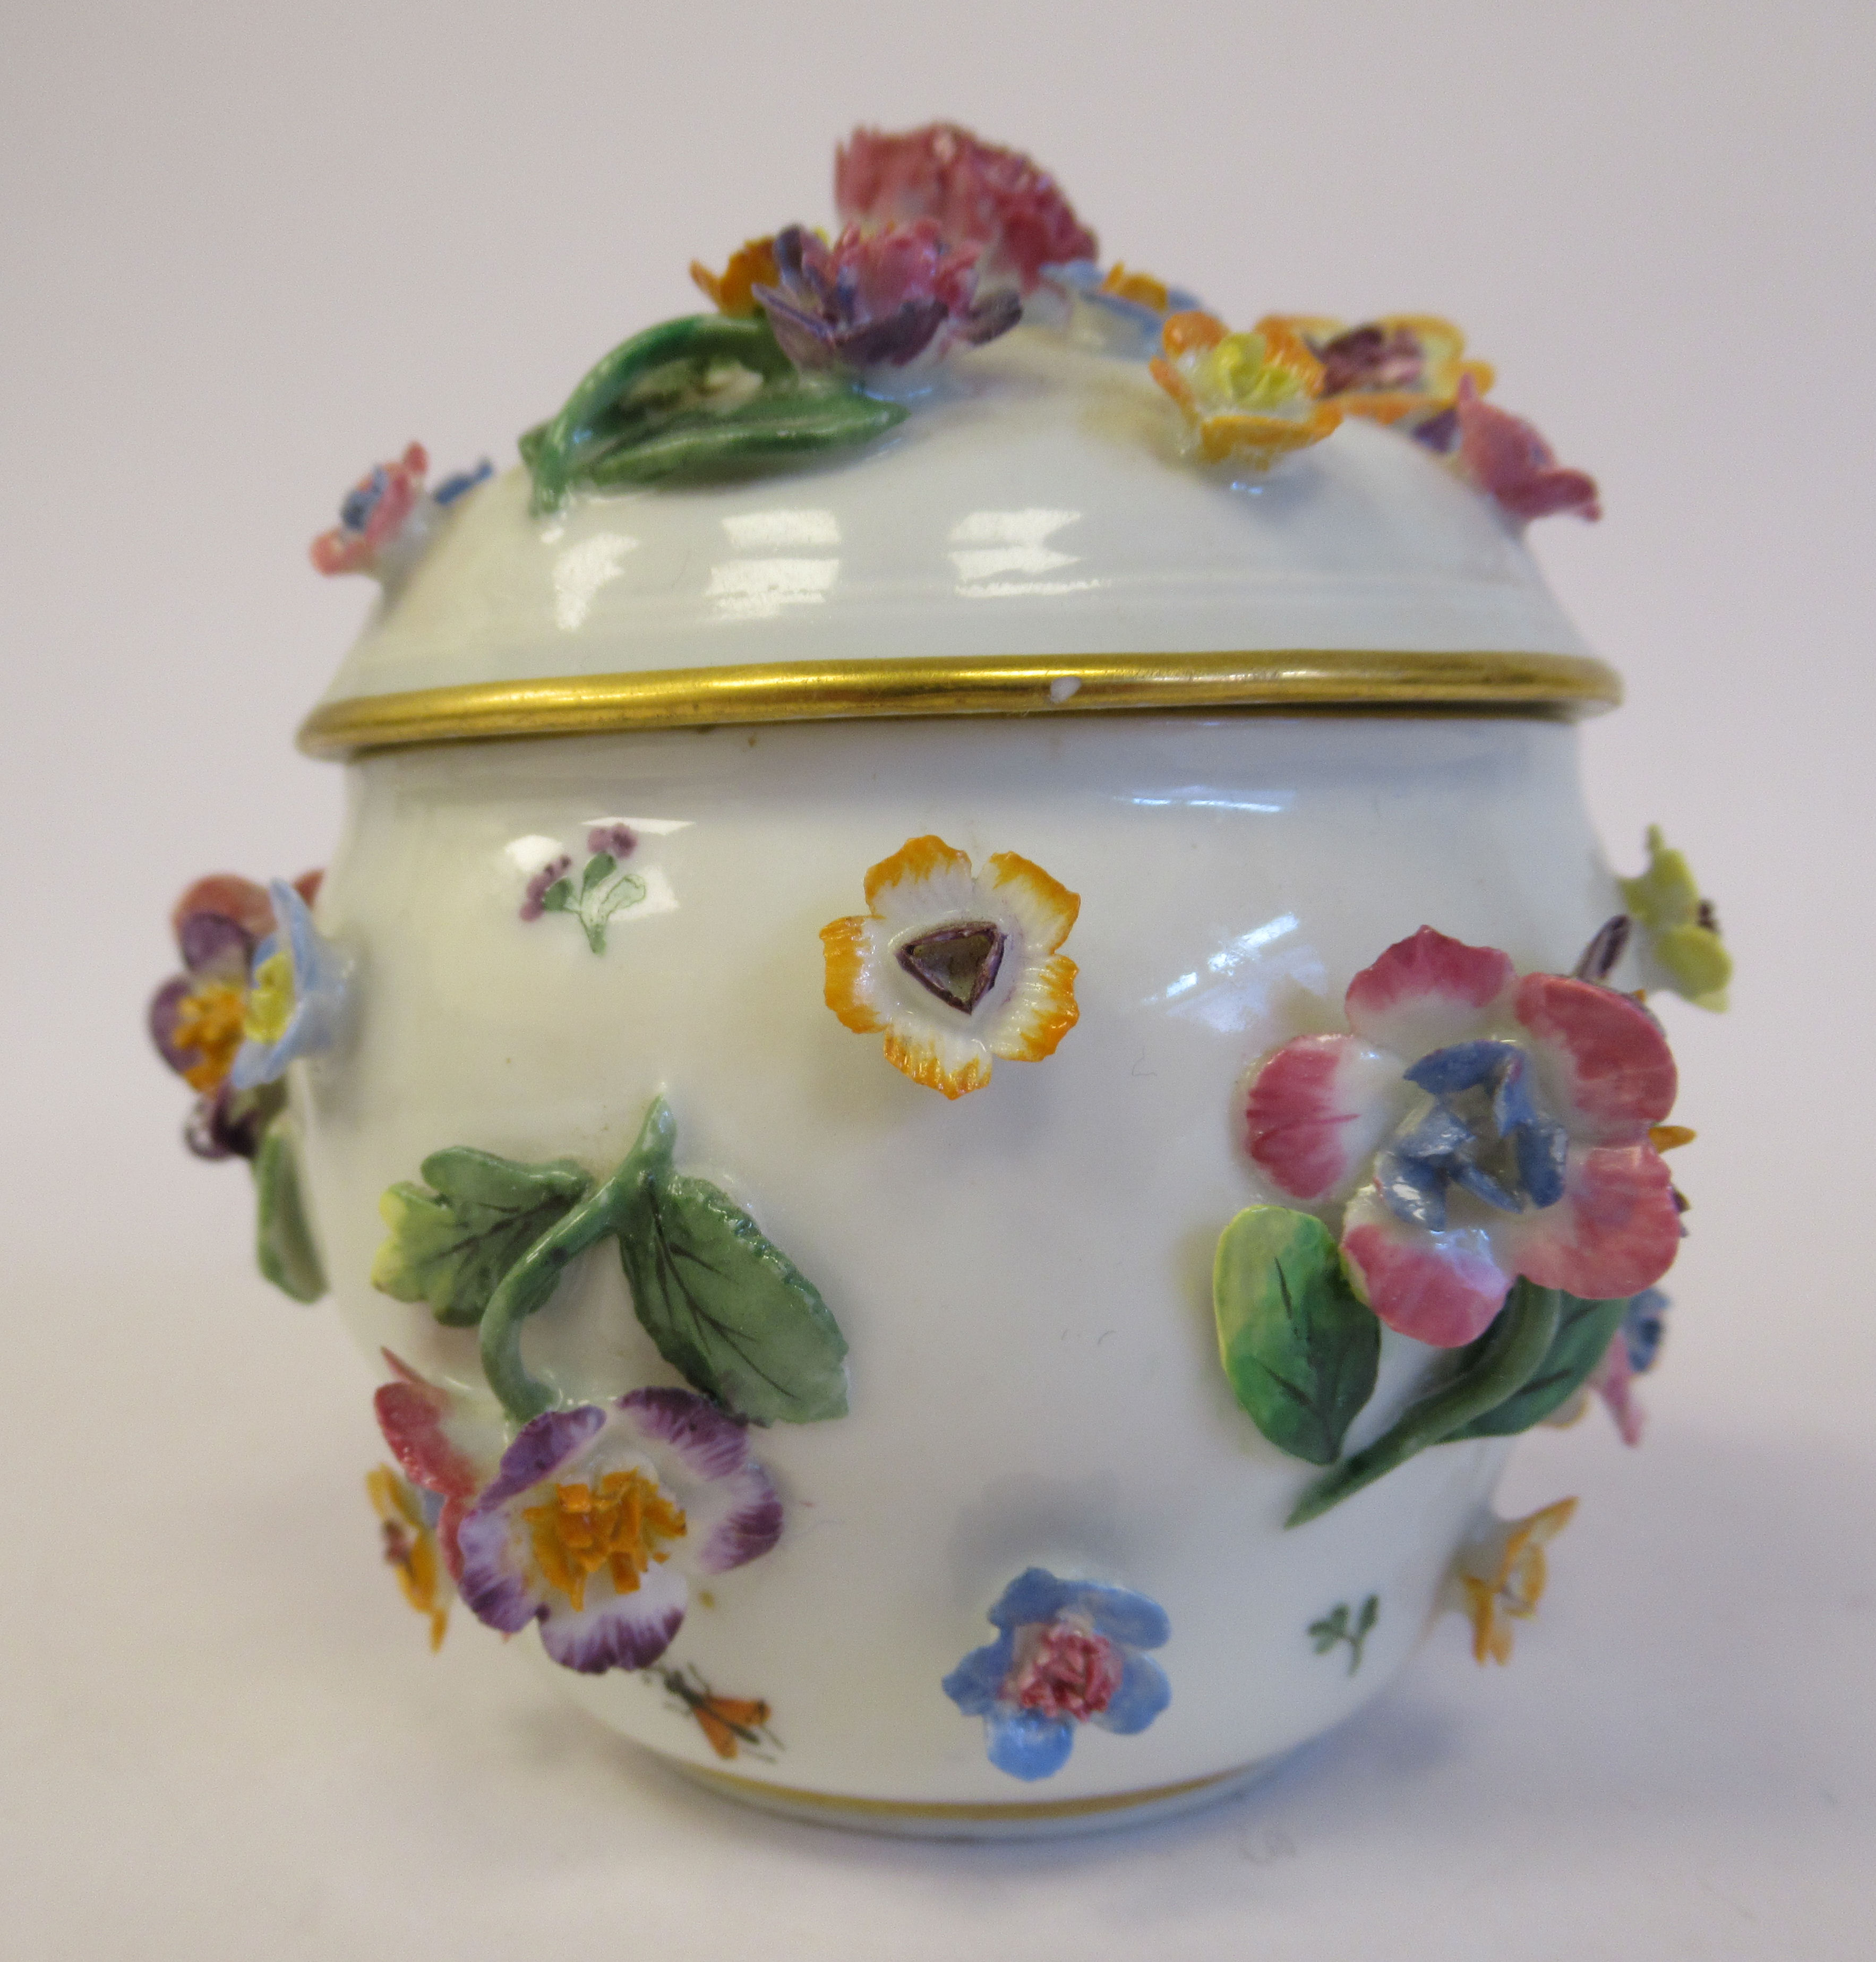 A 19thC Meissen porcelain bulbous pot and domed cover, decorated with encrusted flora and painted - Image 2 of 6